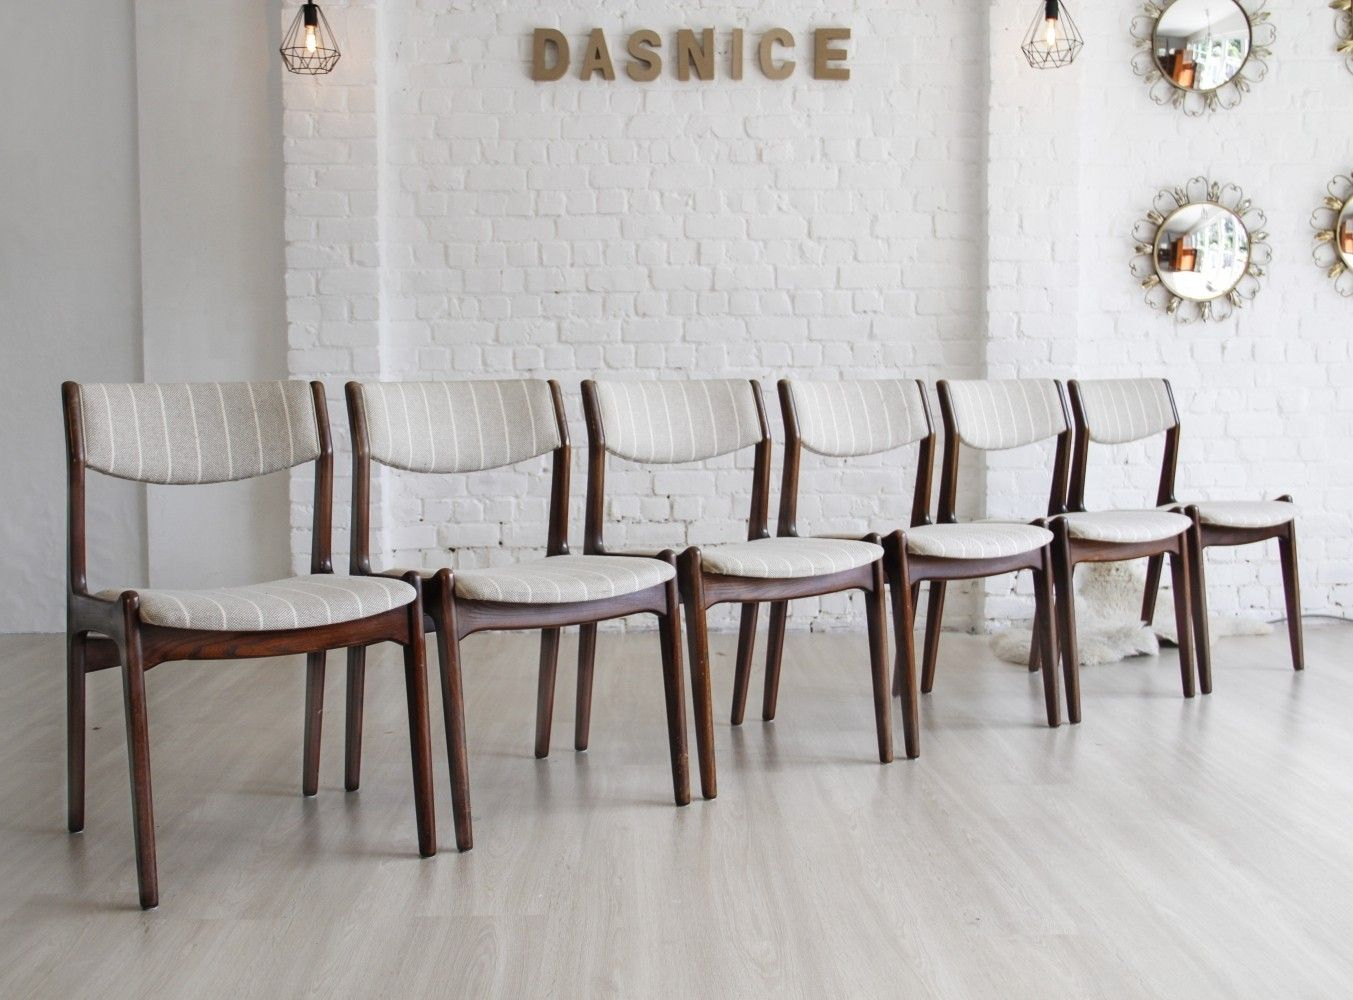 6 dinner chairs from the sixties by unknown designer for unknown producer